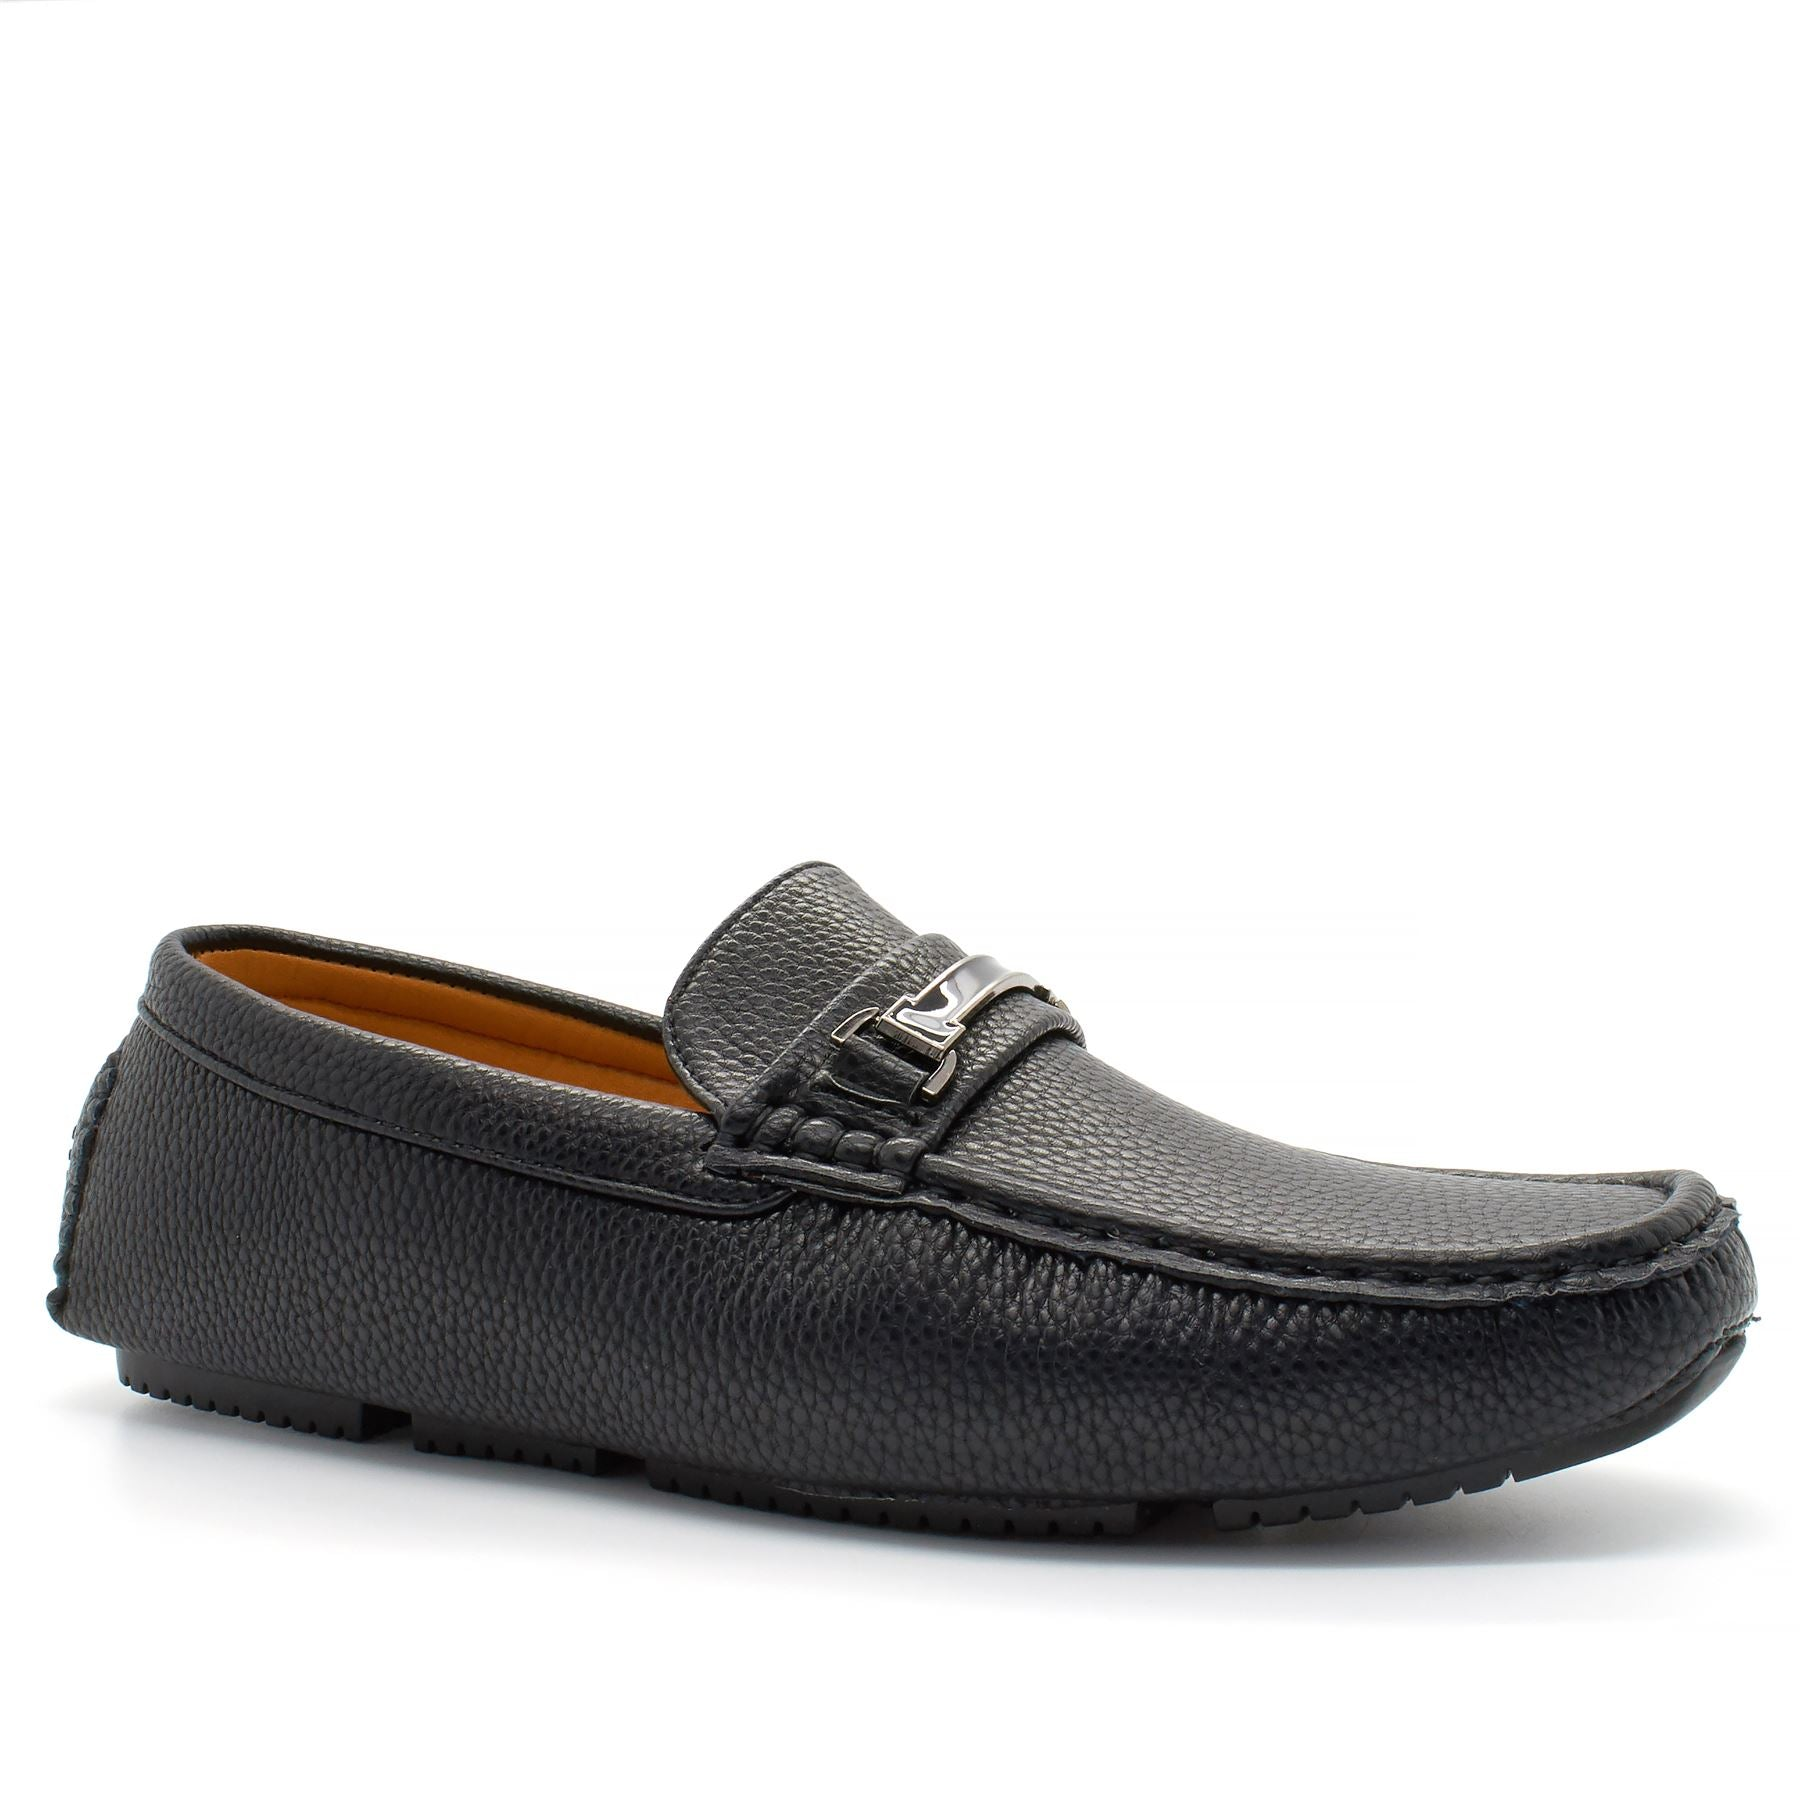 Black Faux Leather Driving Shoes